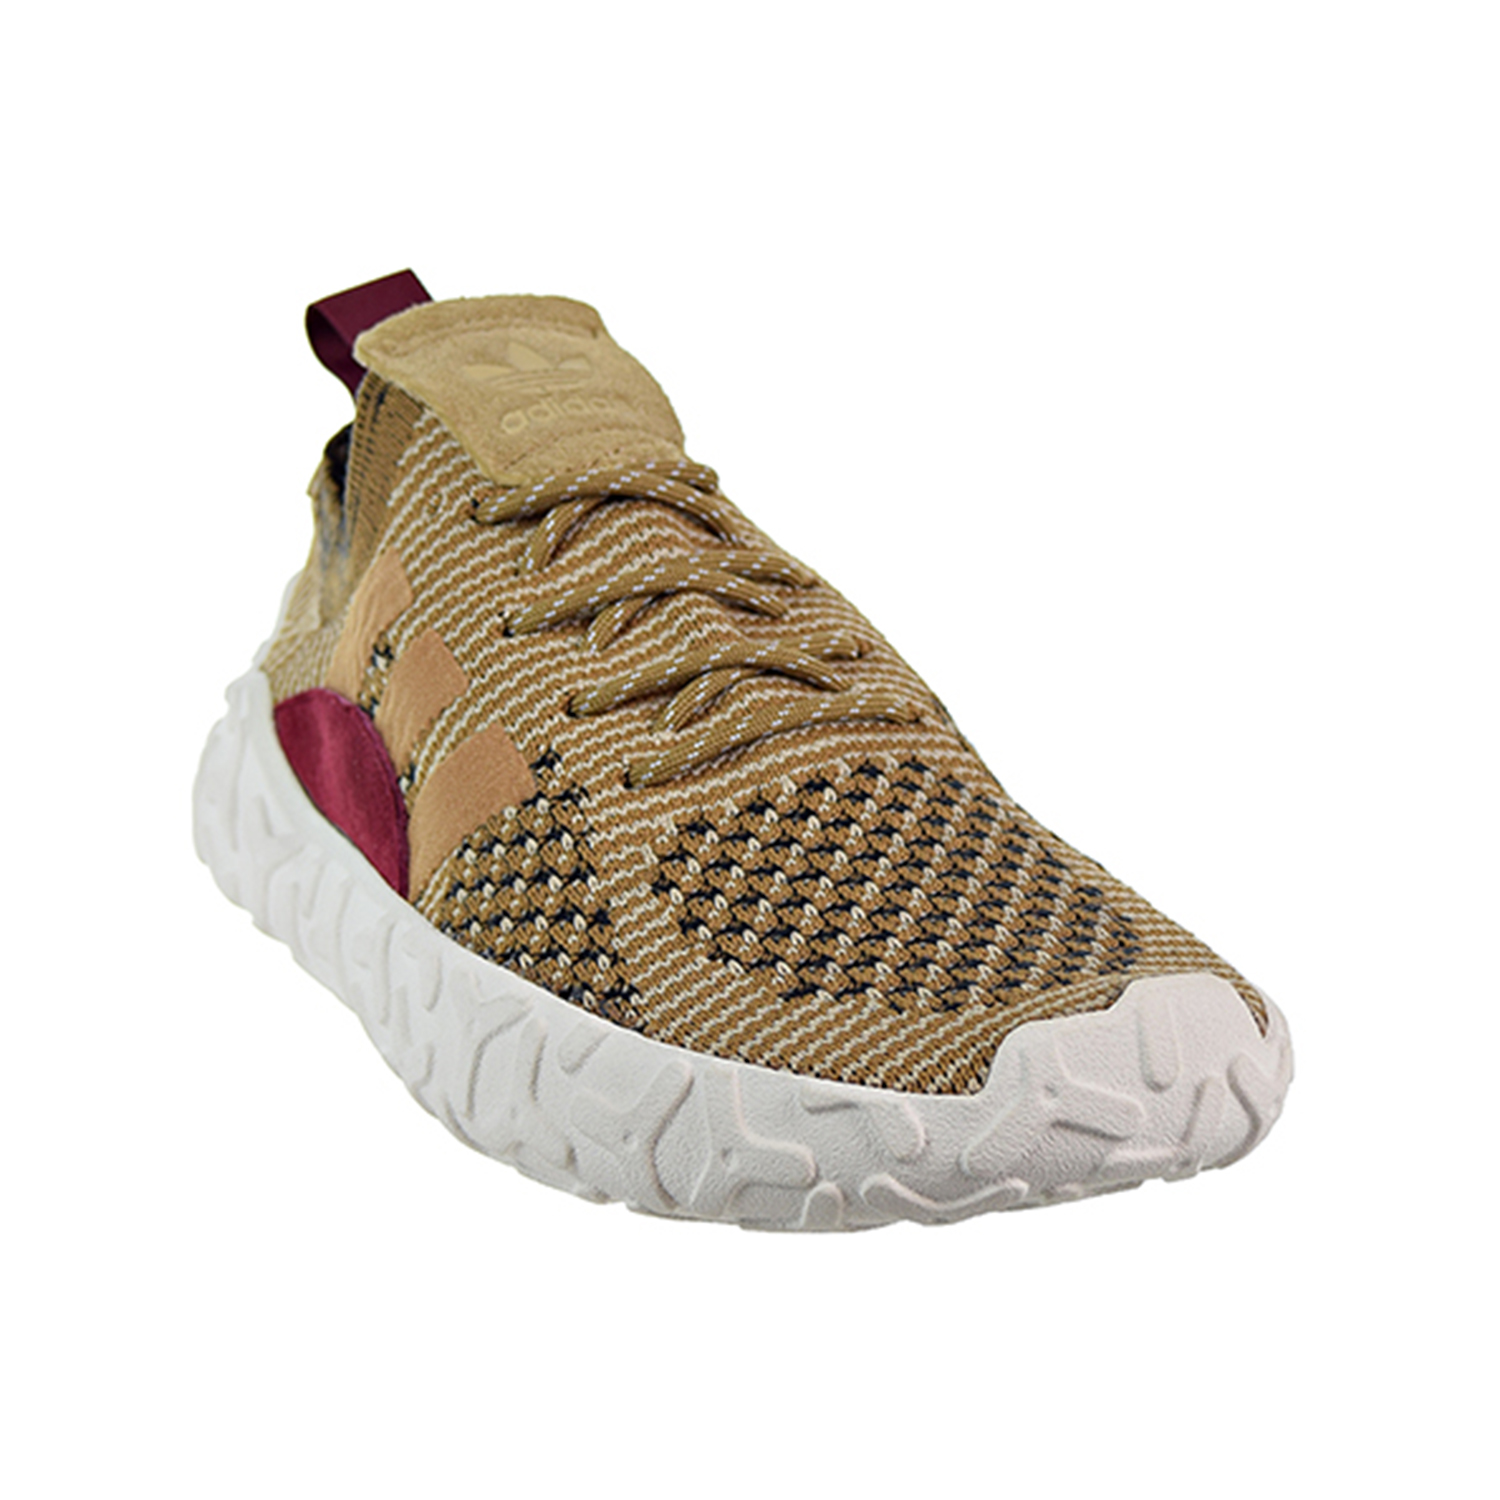 Details about Adidas F 22 Primeknit Men's Shoes Brown Raw Desert Collegiate Burgundy B41736